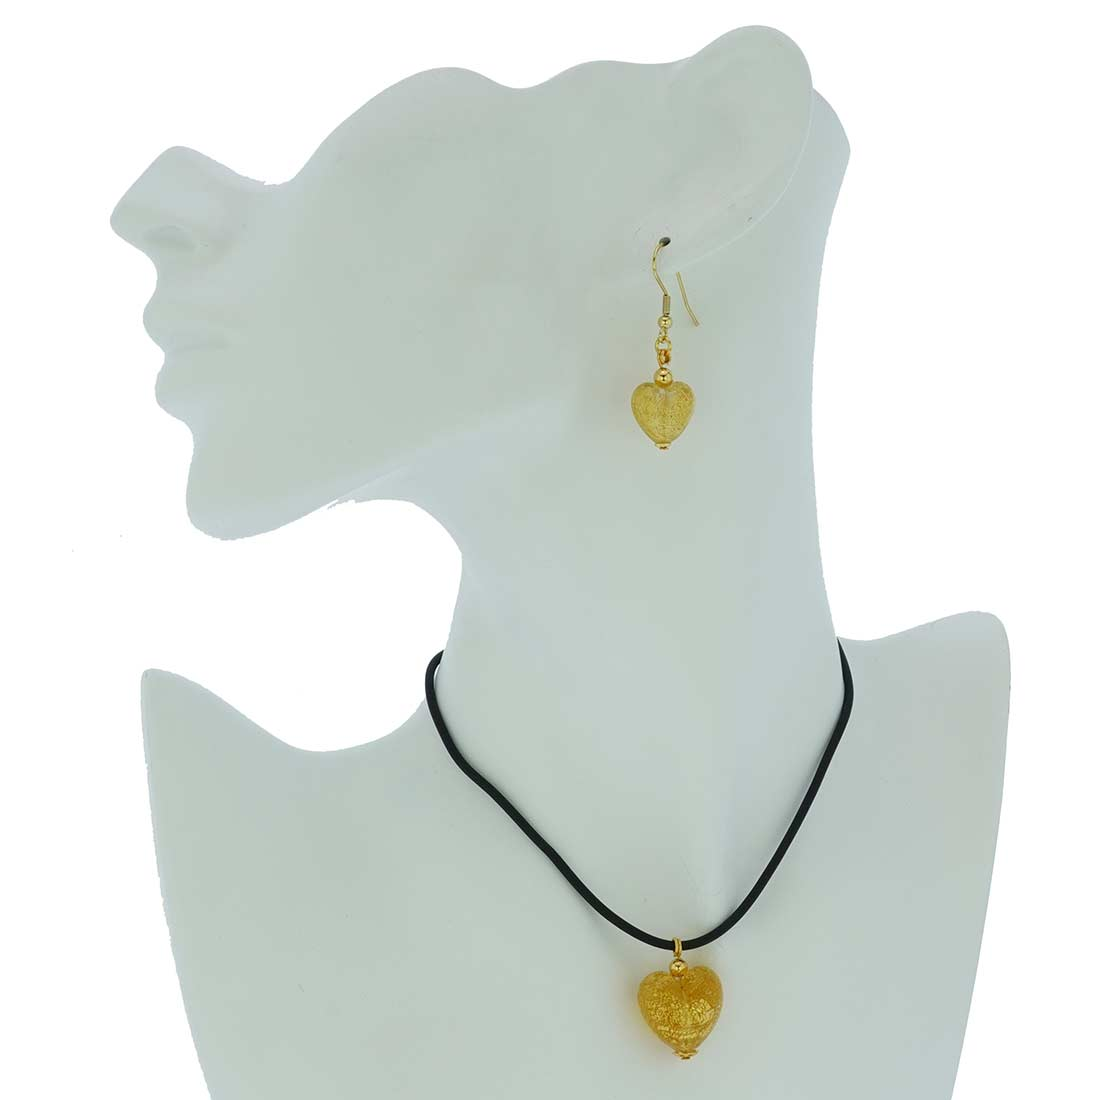 Murano Glass Puffed Heart Necklace and Earrings Set - Sparkling Gold